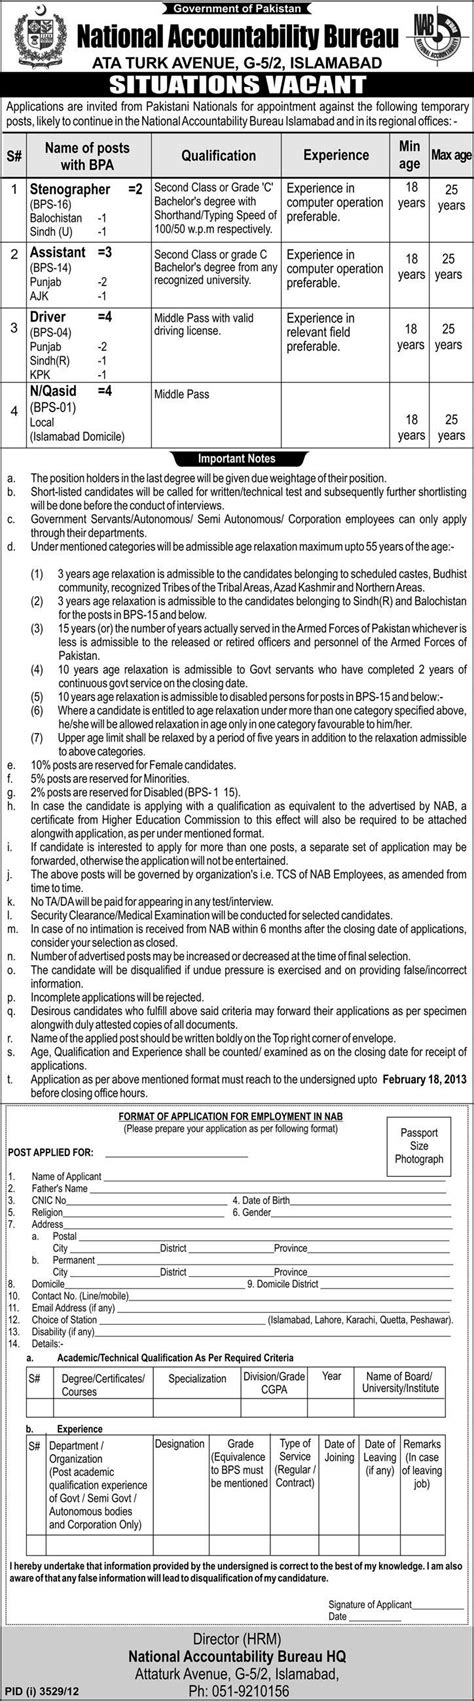 express pros application online nab jobs 2013 application form in islamabad pakistan